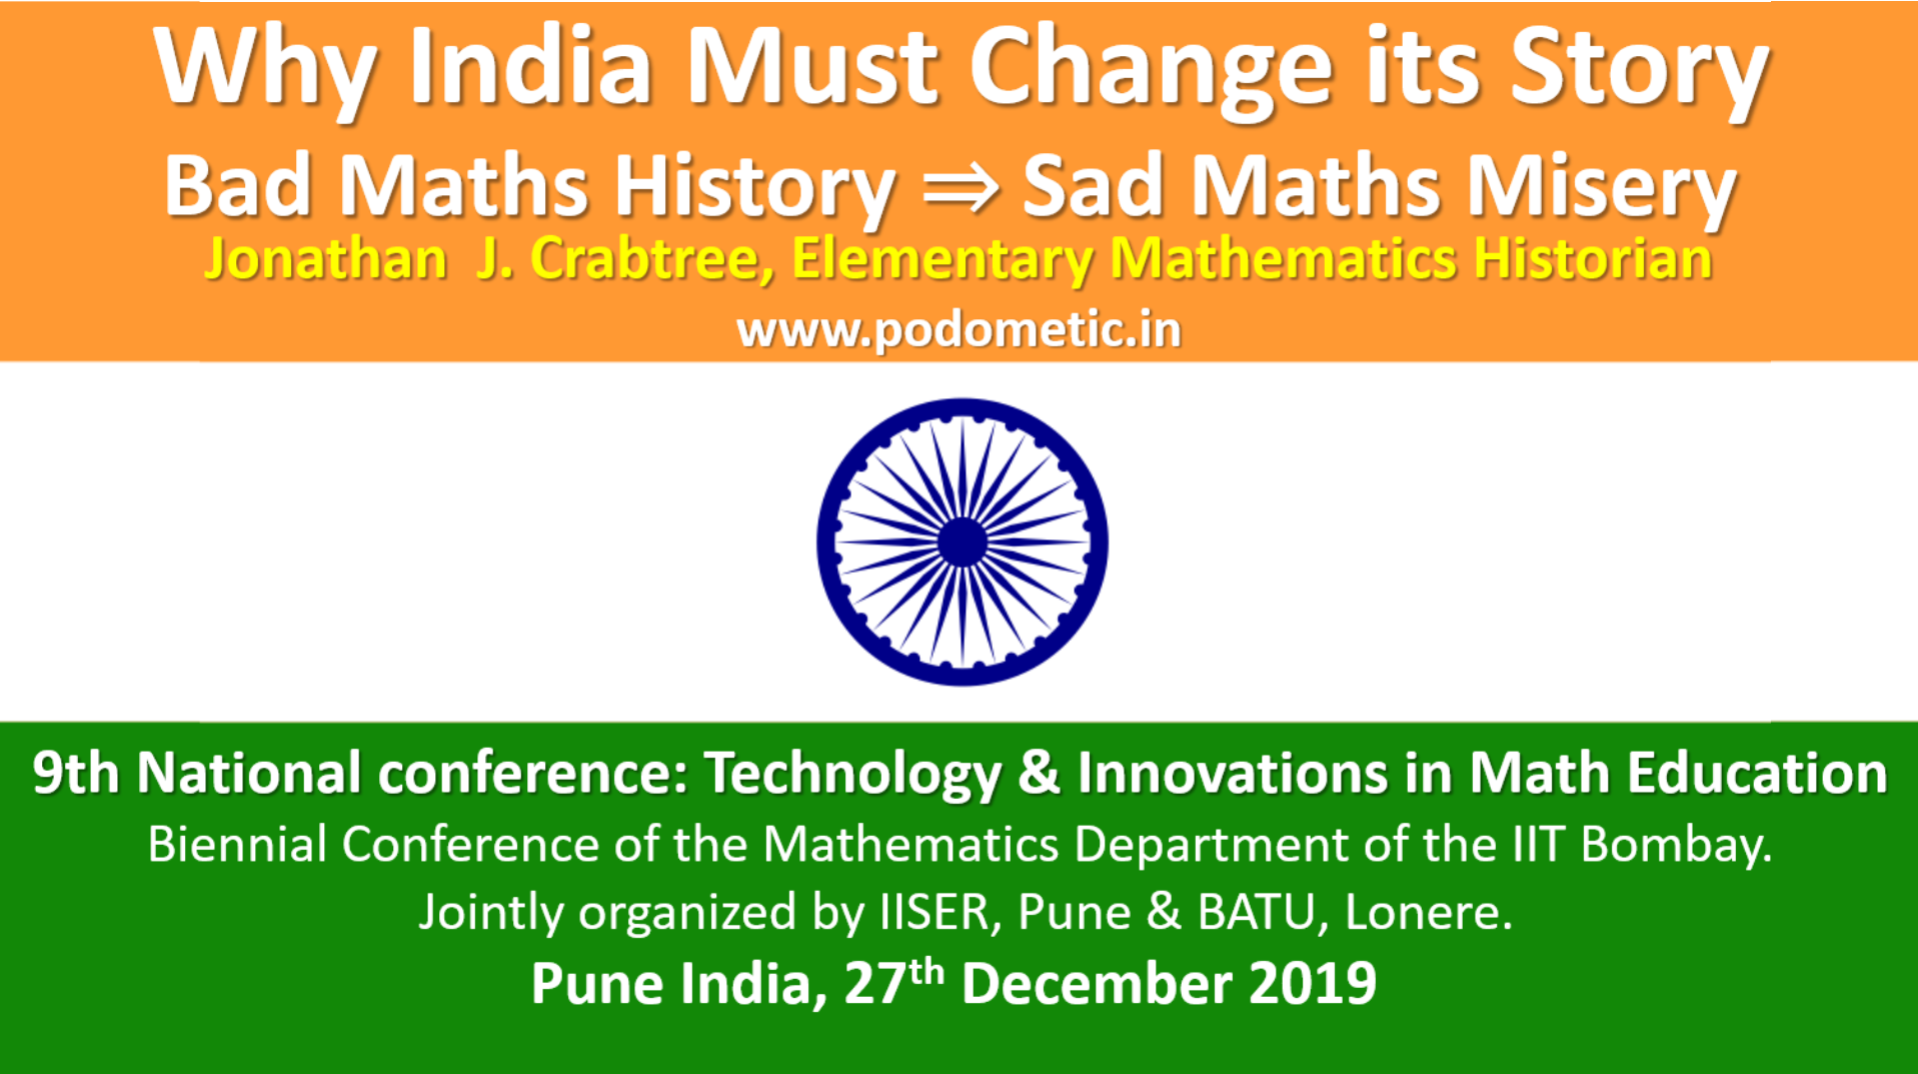 Bad Maths History ⇒ Sad Maths Misery​ Why India Must Change its Story